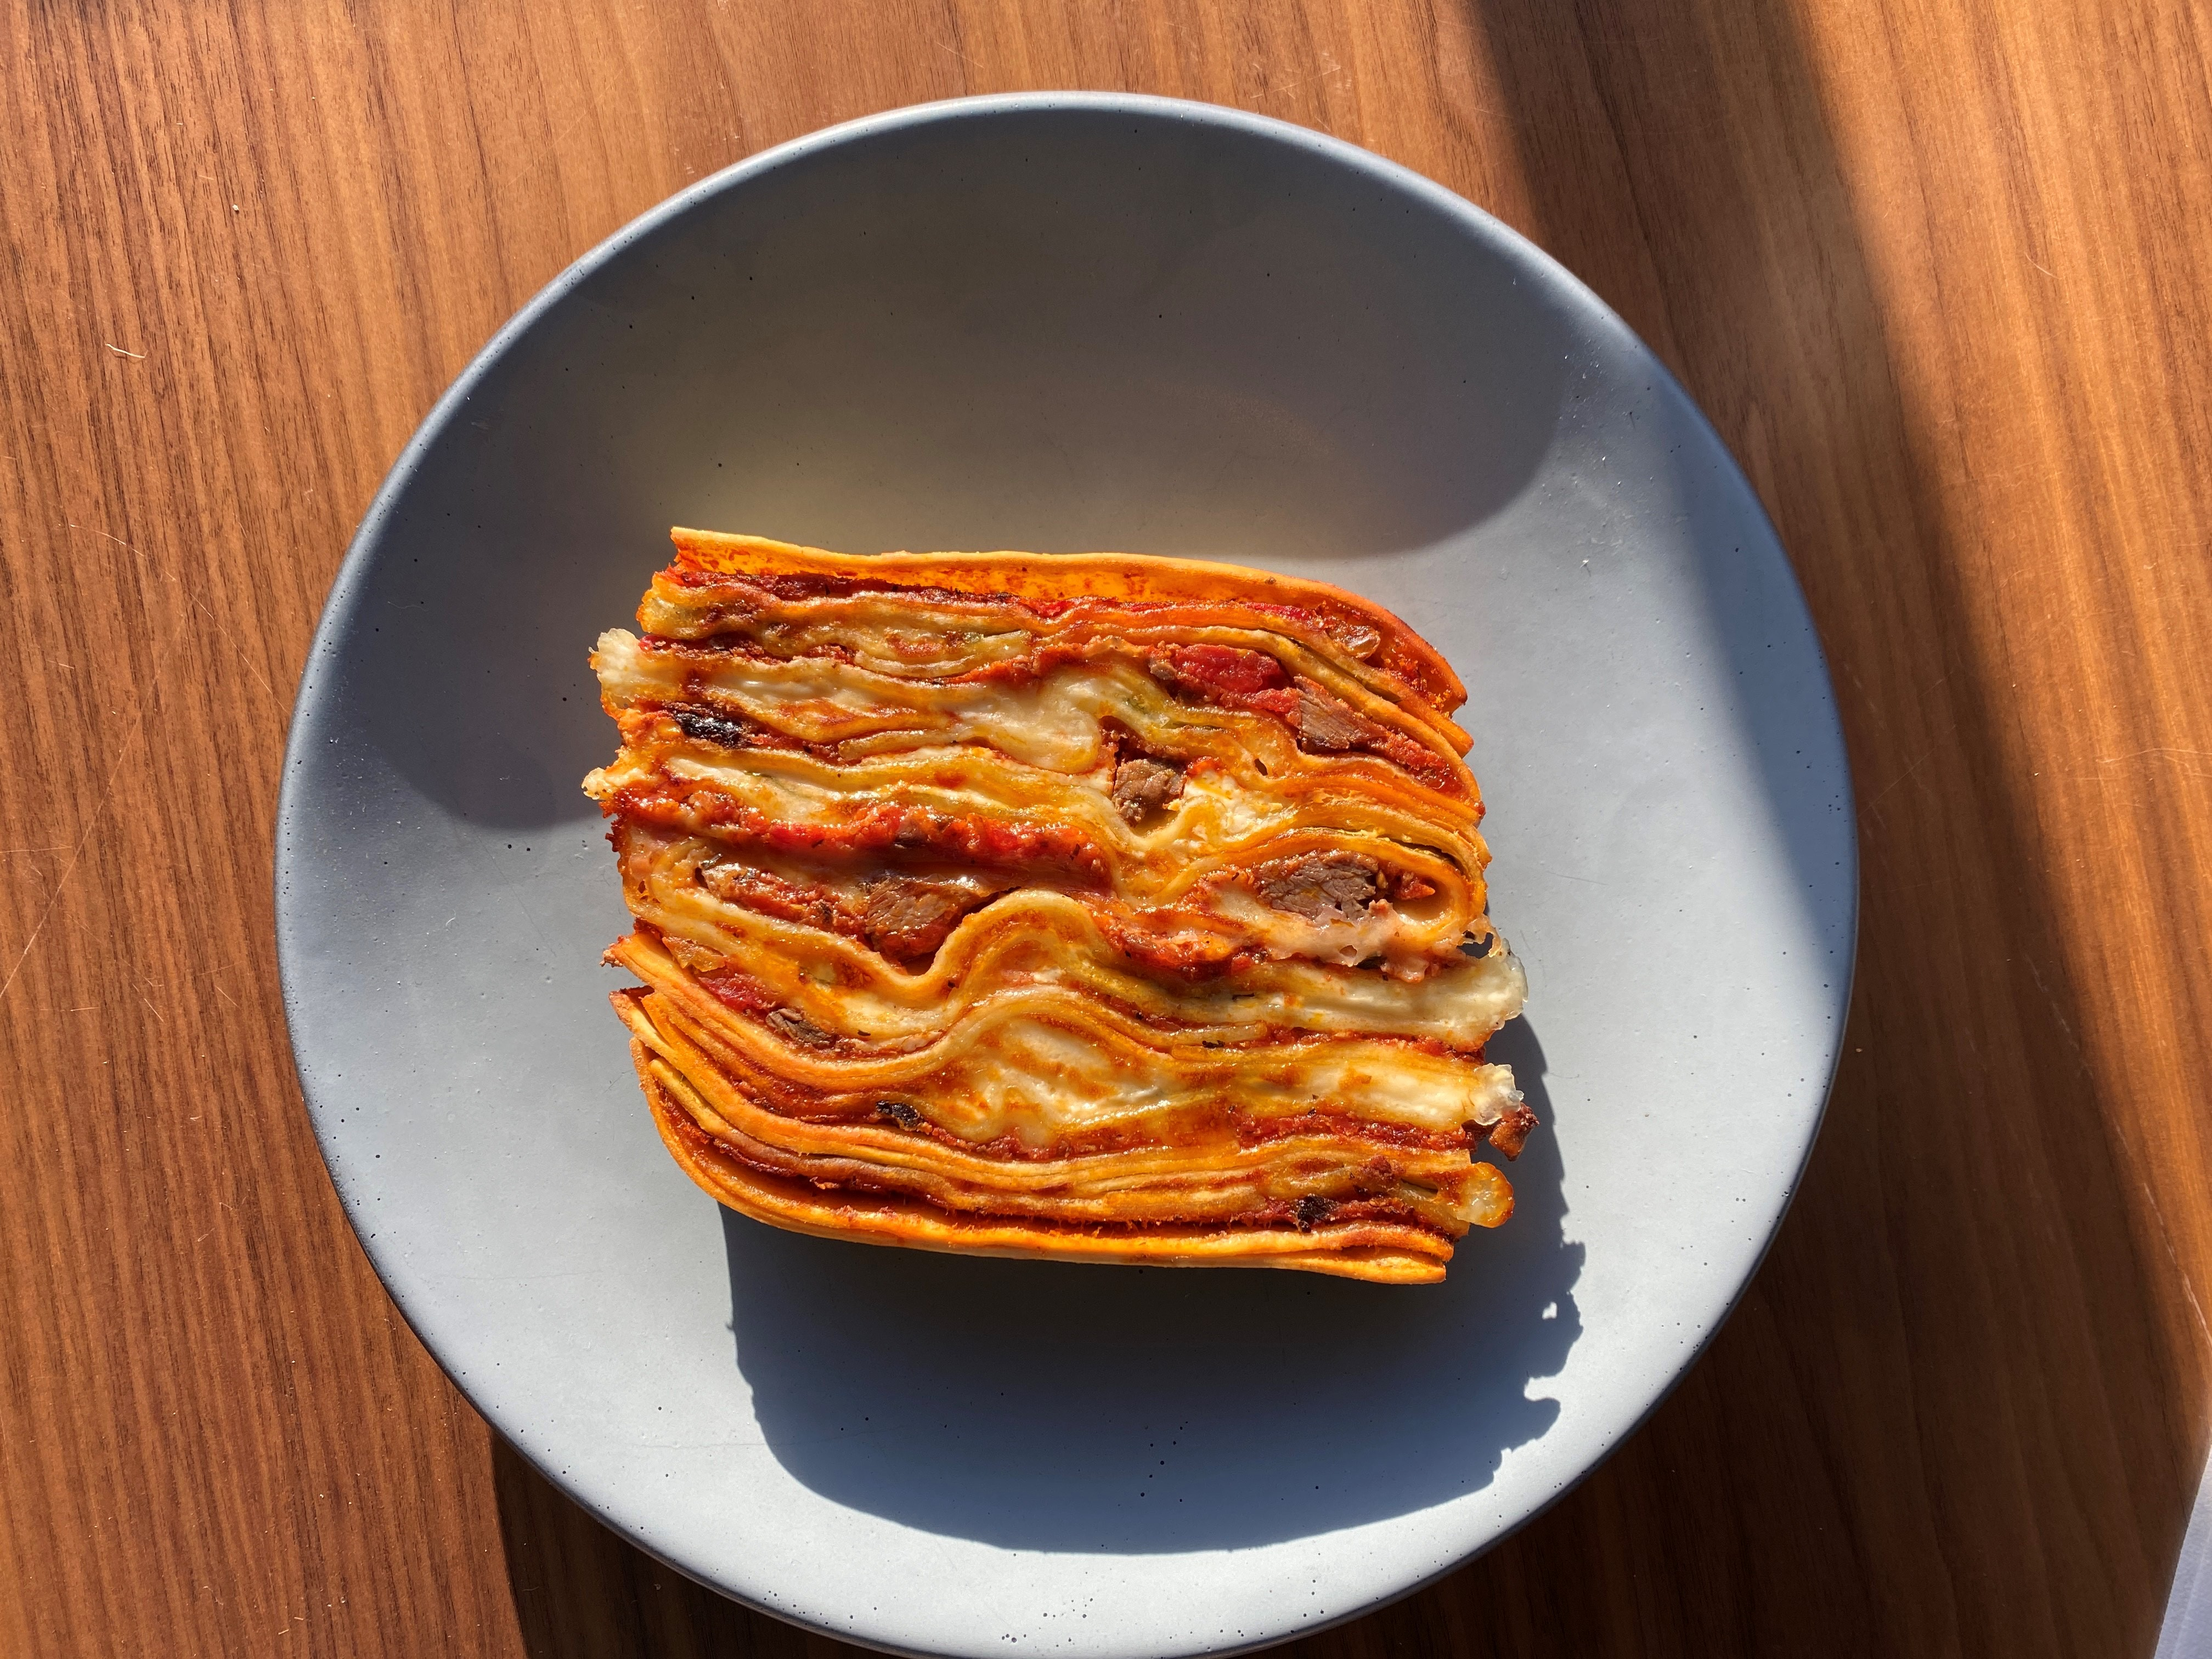 Overhead view of lasagna, positioned on its side so the many-layered cross-section is visible. It's on a pale gray plate on a wooden table.